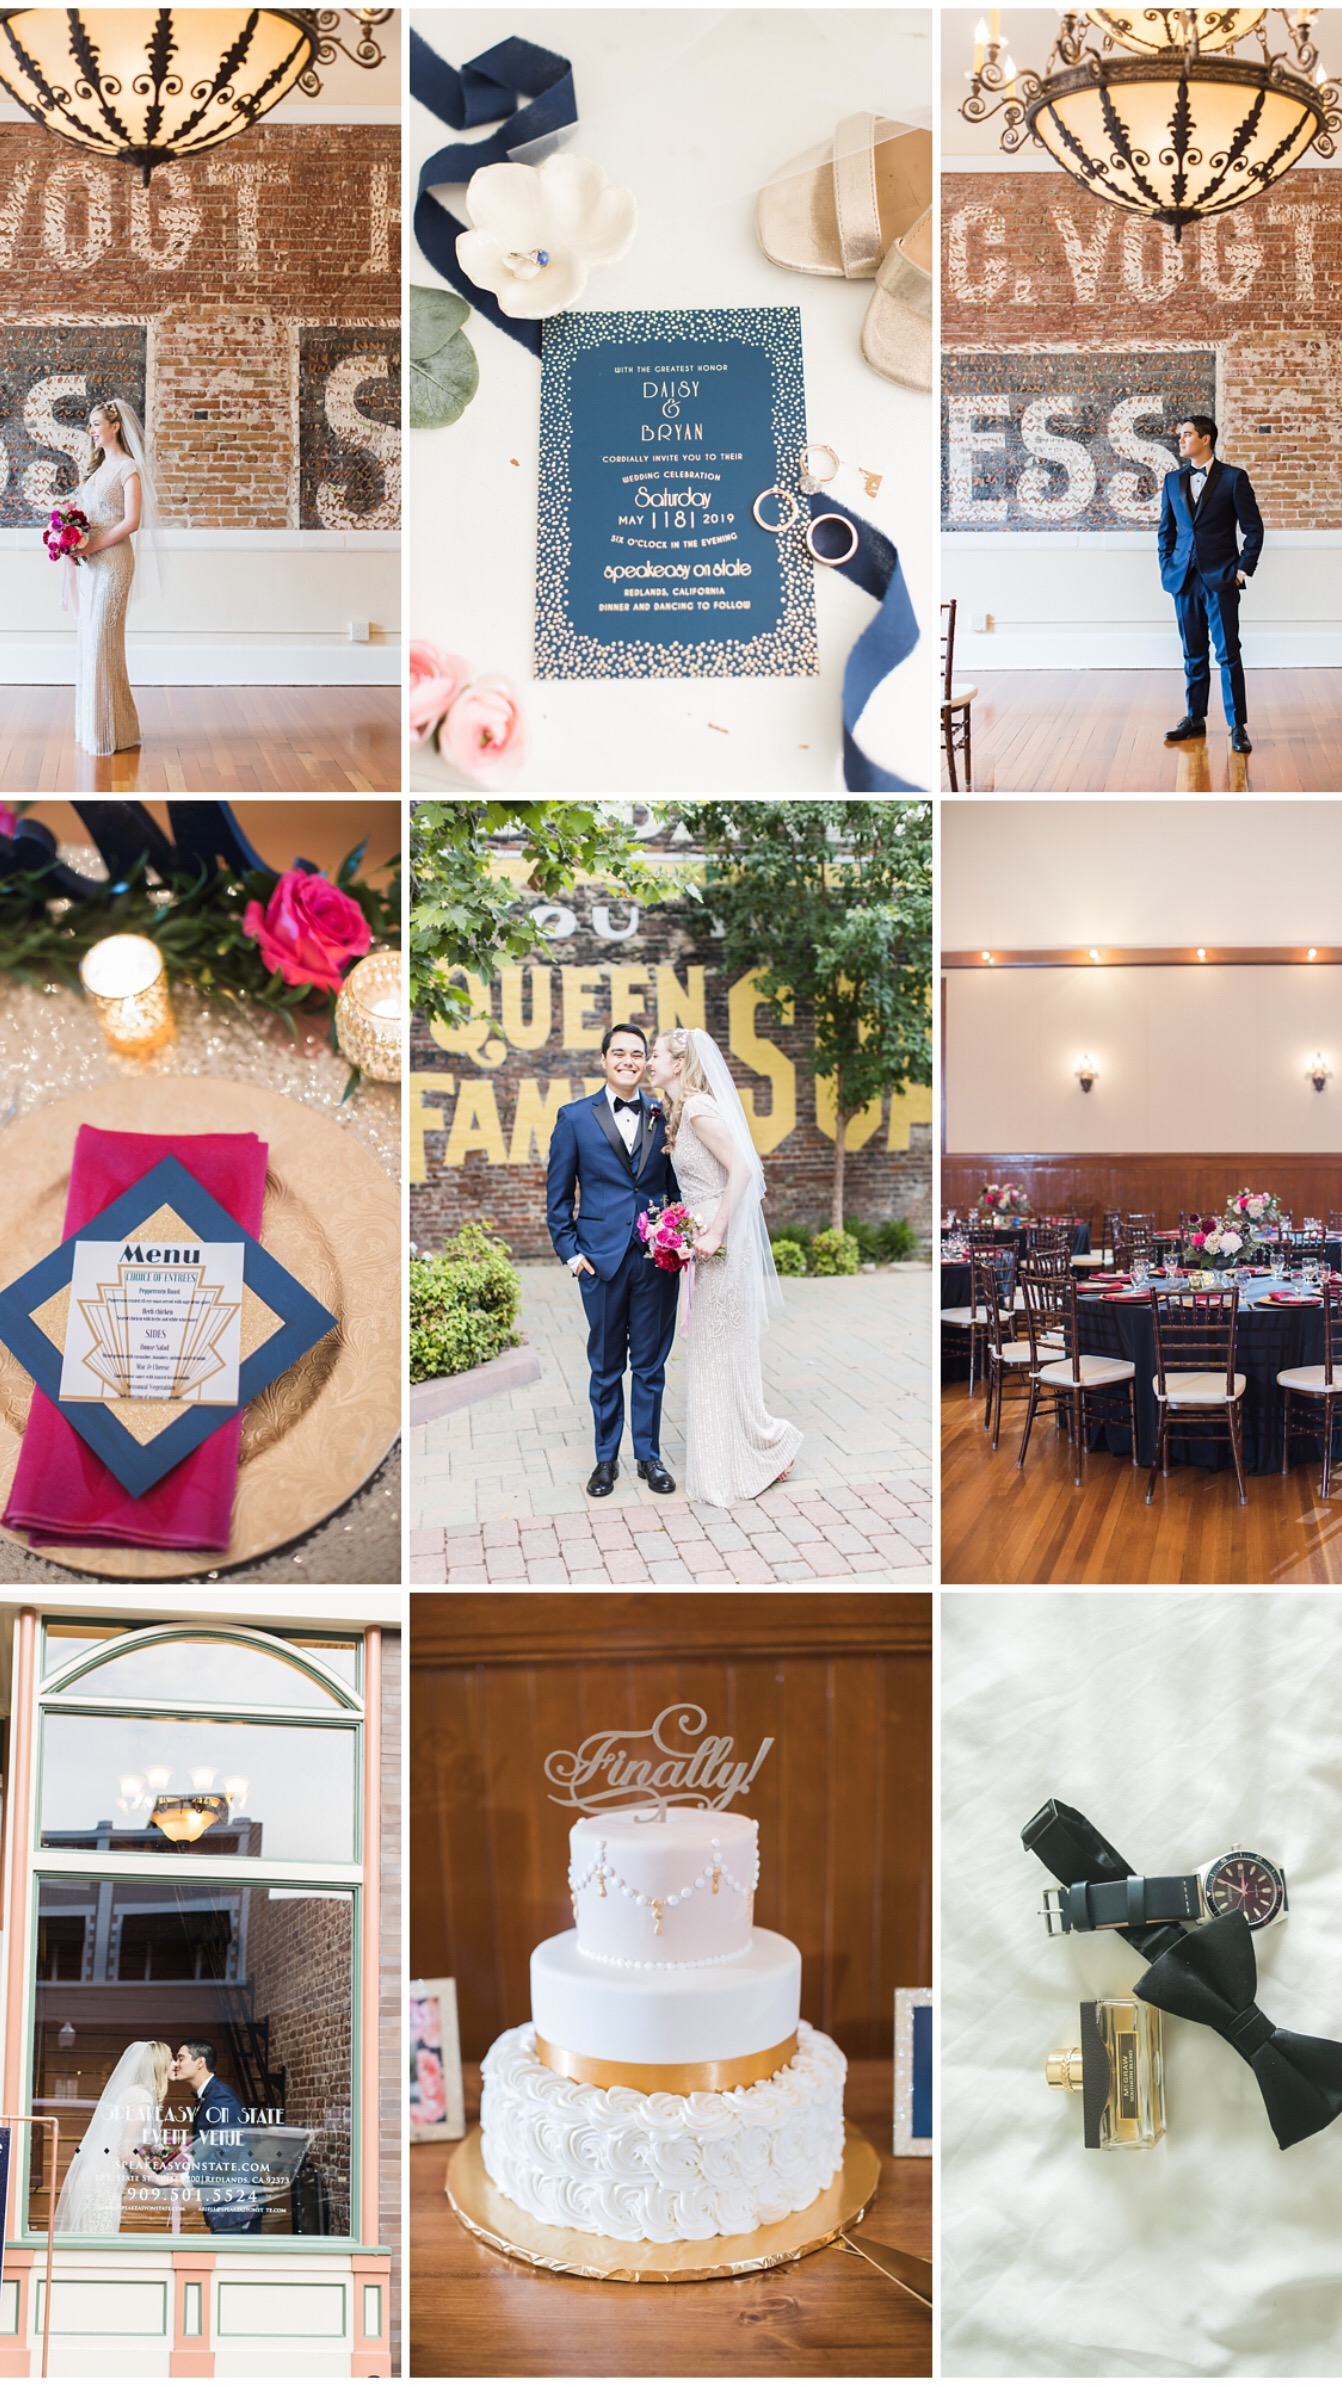 burgundy and navy wedding at the Speakeasy on State in Downtown Redlands by Carrie Vines Photography